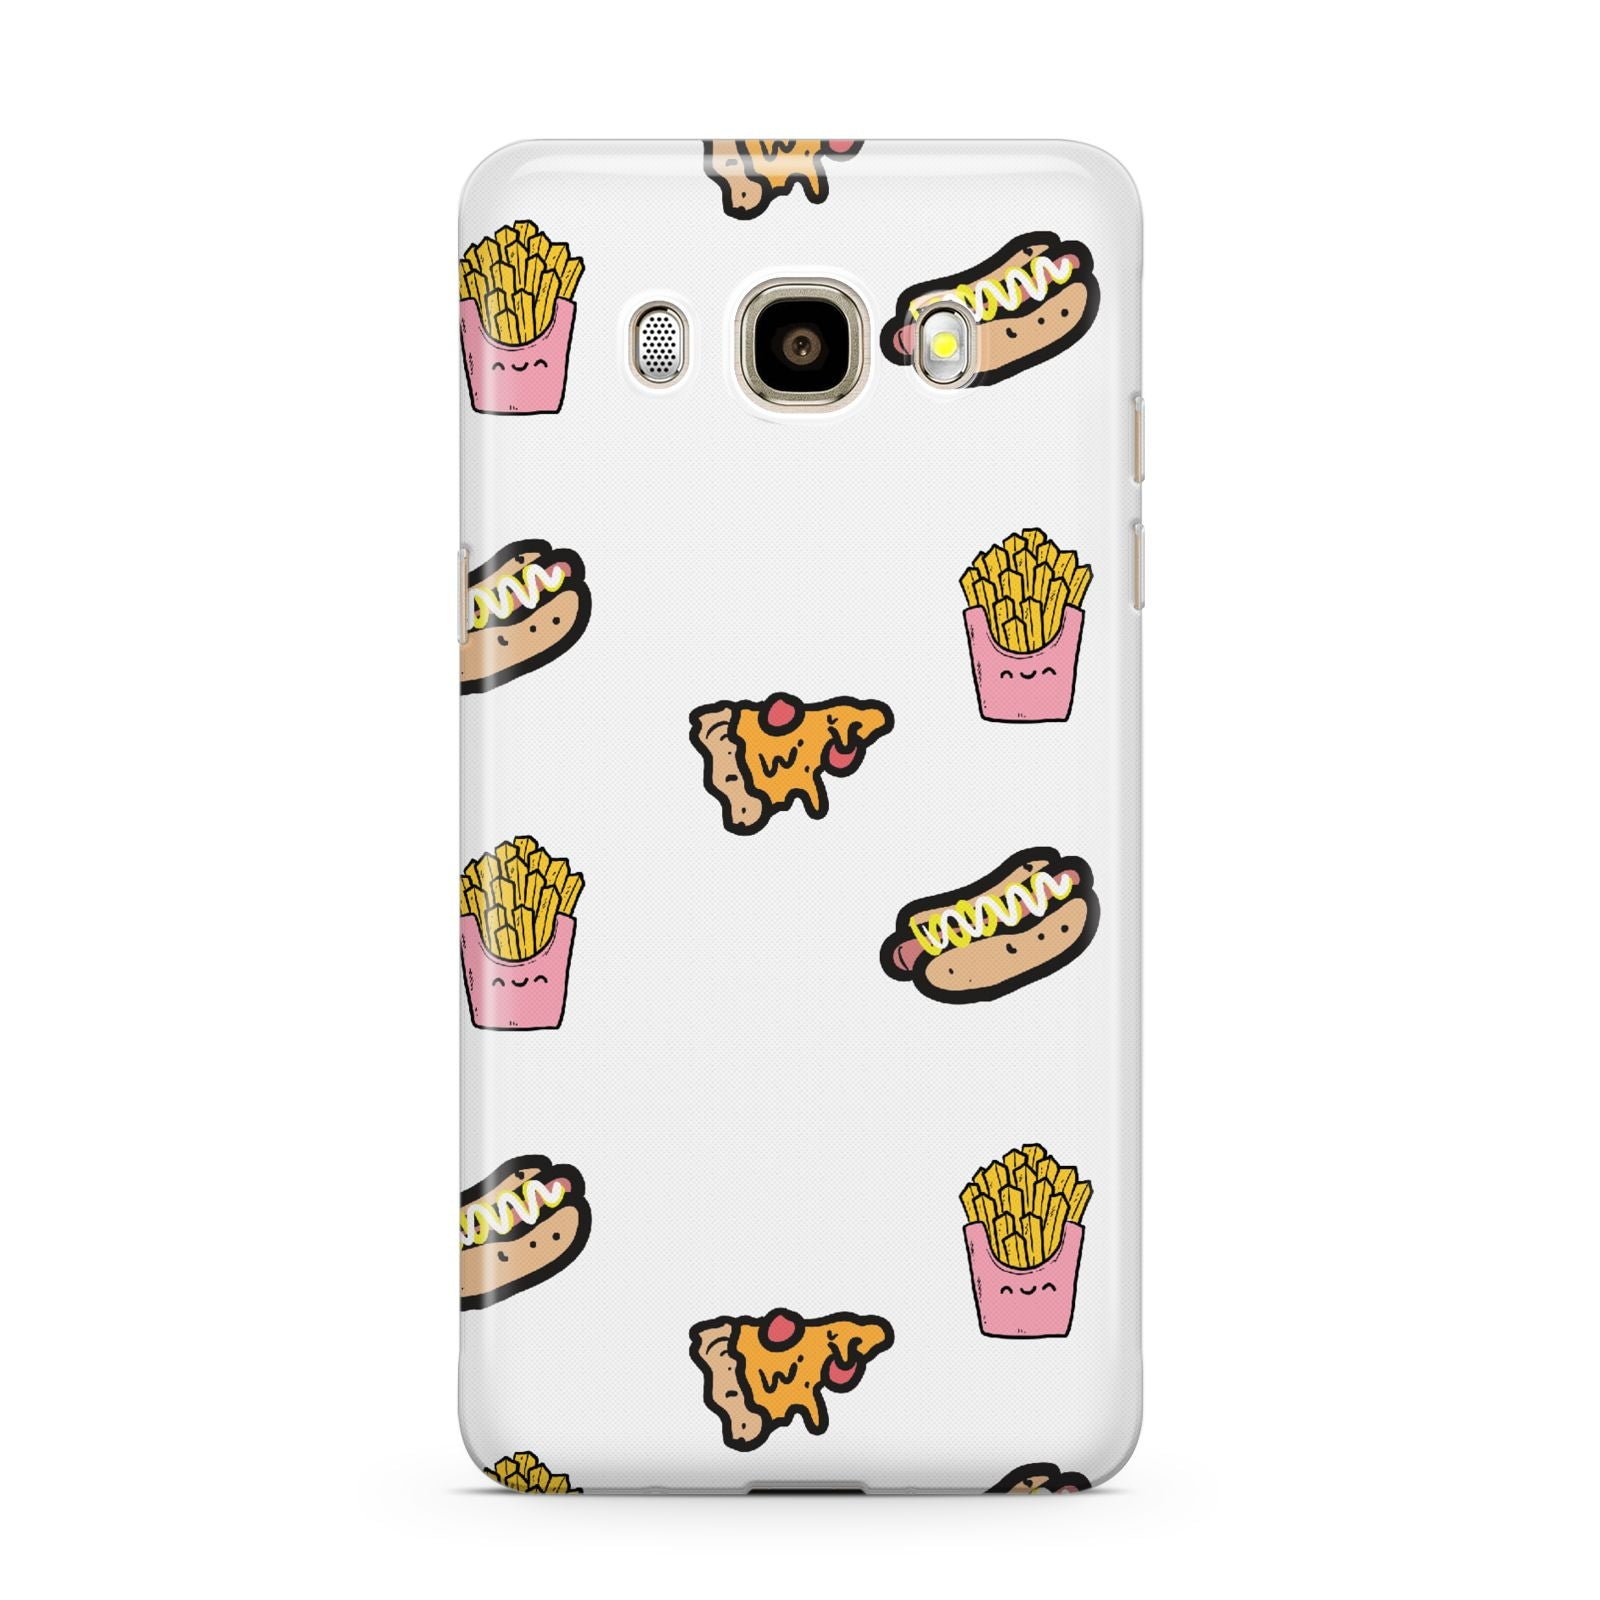 Fries Pizza Hot Dog Samsung Galaxy J7 2016 Case on gold phone